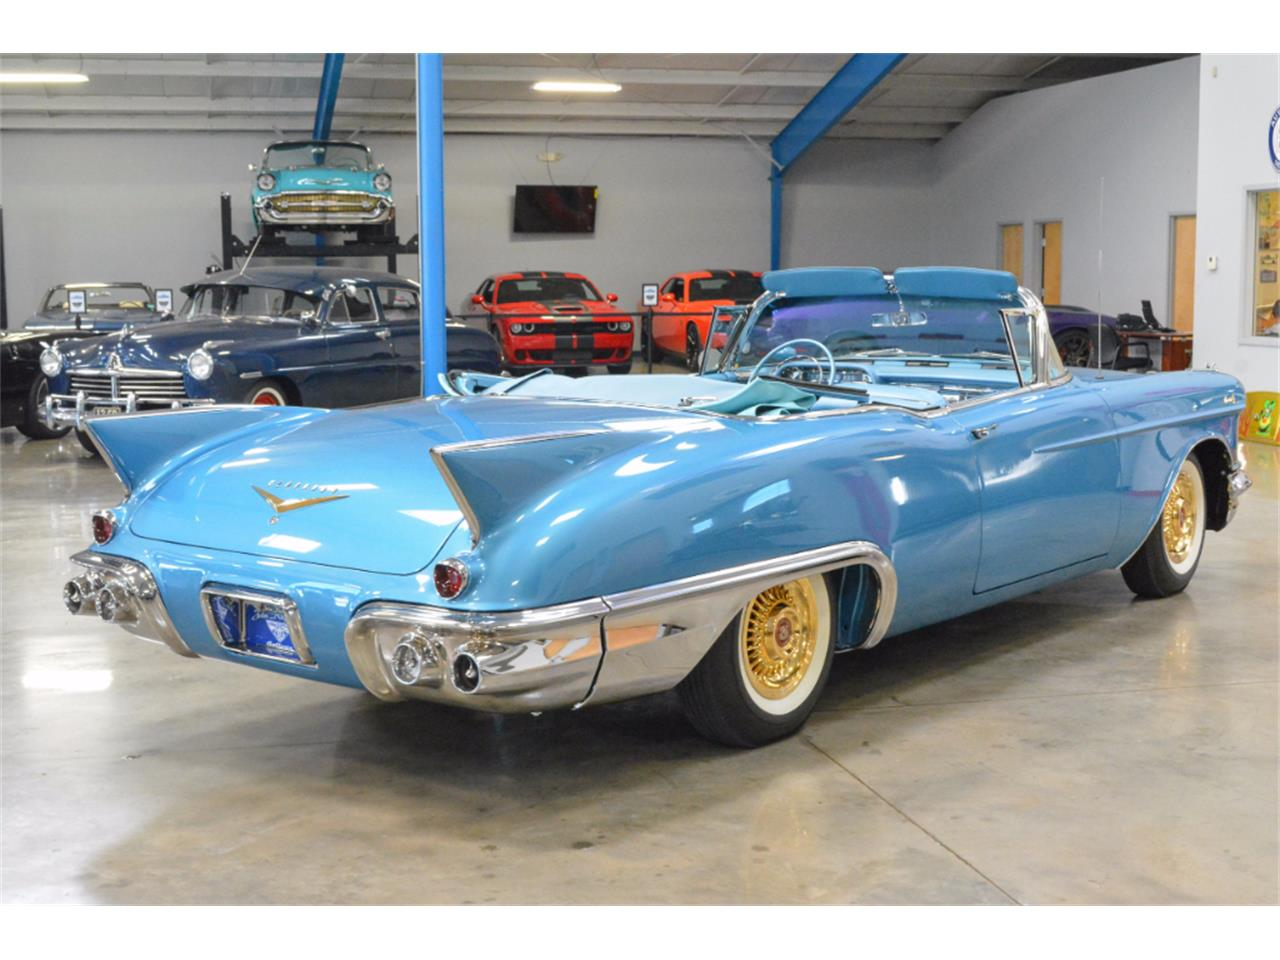 Large Picture of '57 Cadillac Eldorado located in Ohio Auction Vehicle - LKLZ